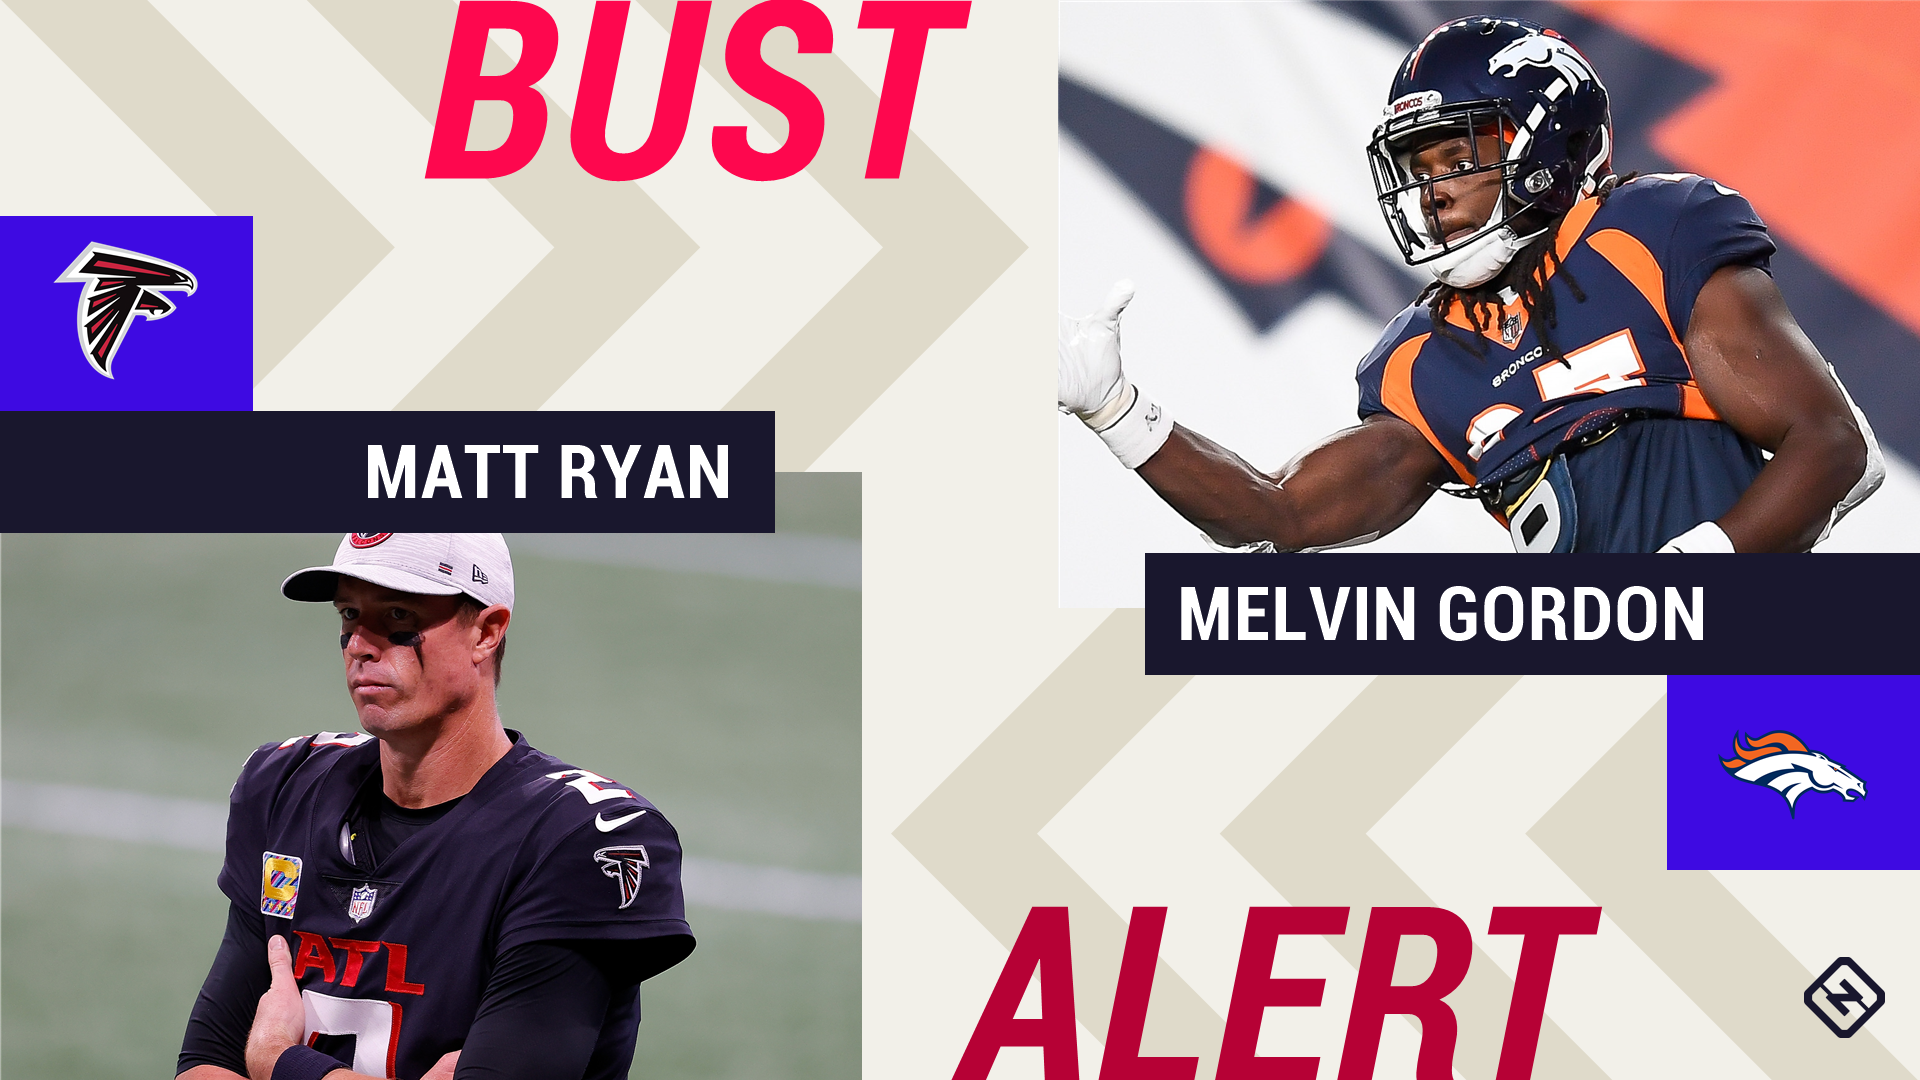 Week 6 Fantasy Busts: Matt Ryan, Melvin Gordon among risky 'starts'